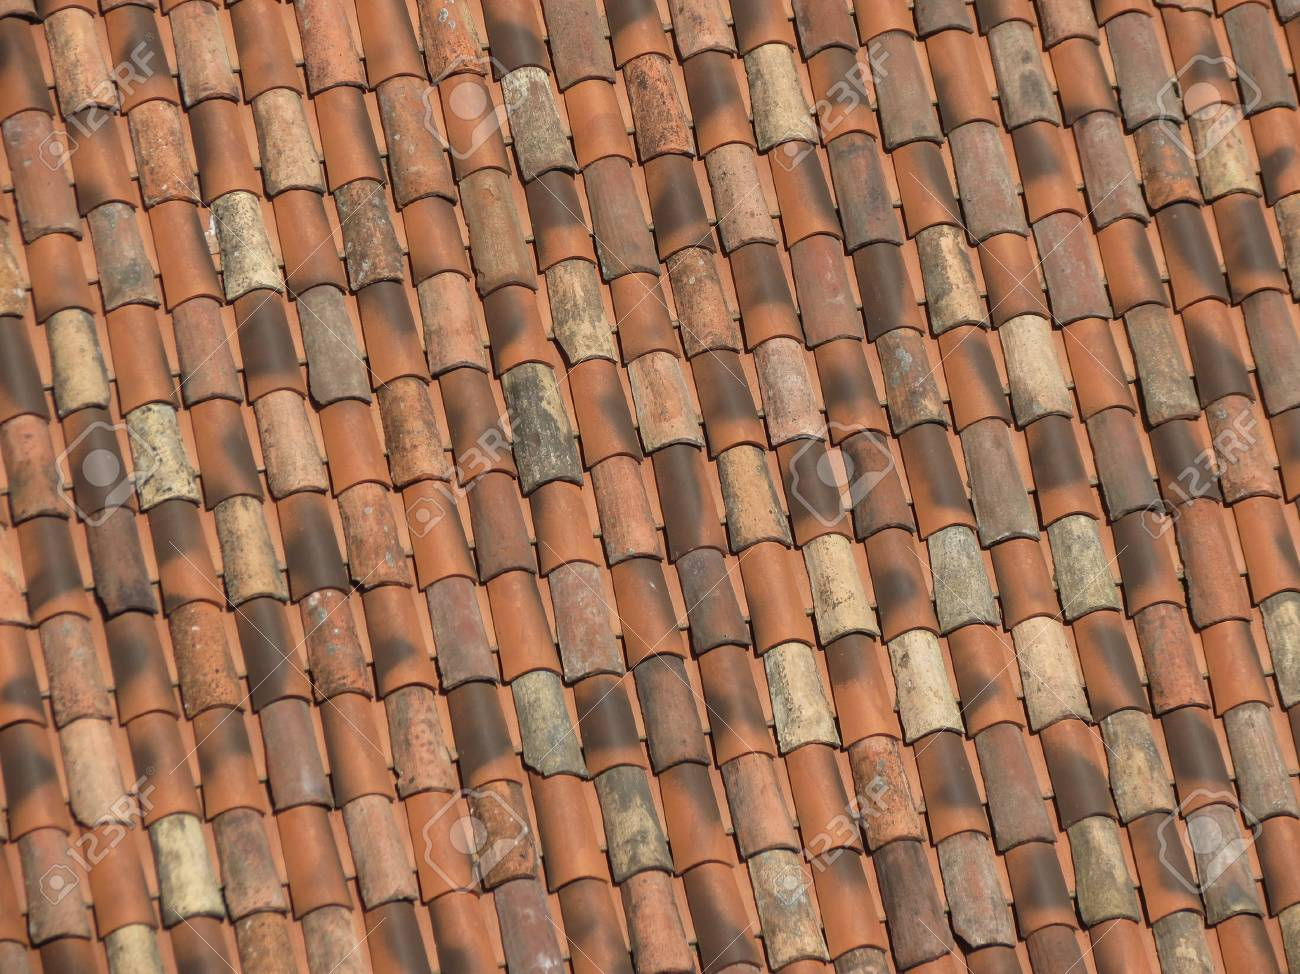 Red Brick Tile Roof Texture Useful As A Background Stock Photo Picture And Royalty Free Image Image 82419042